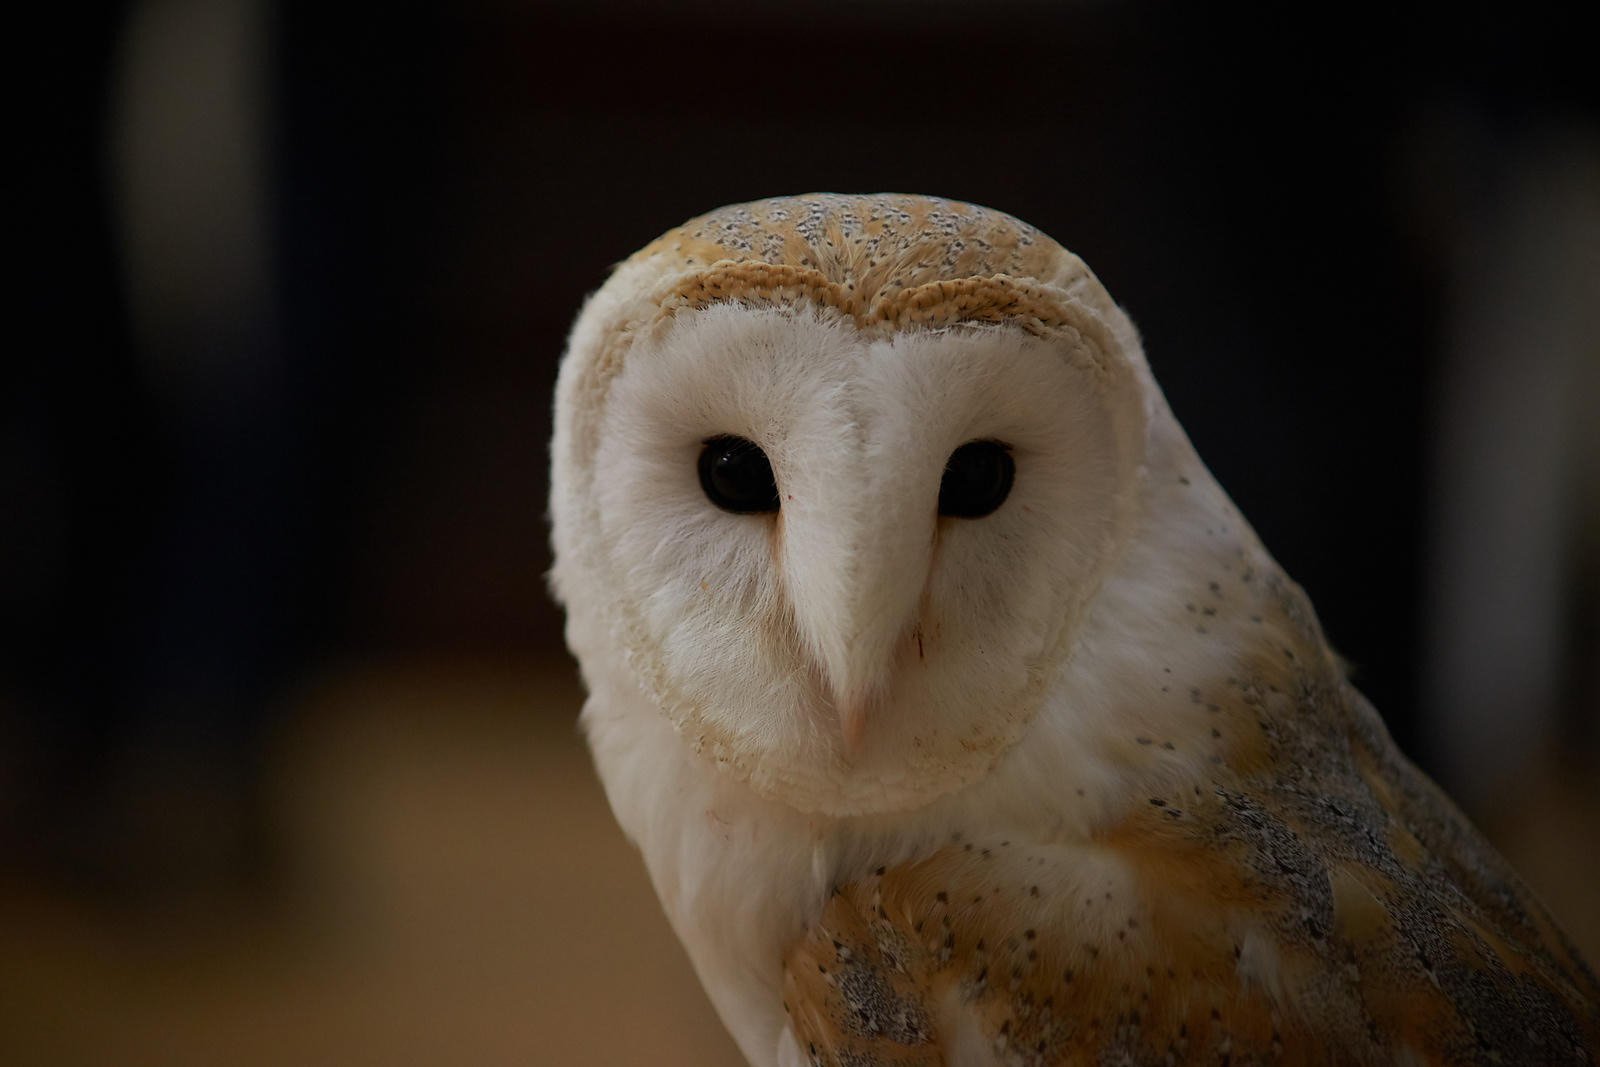 Pawsey_Photography_-_Canvas_for_sale_-_Barn_owl_portrait-180125191345